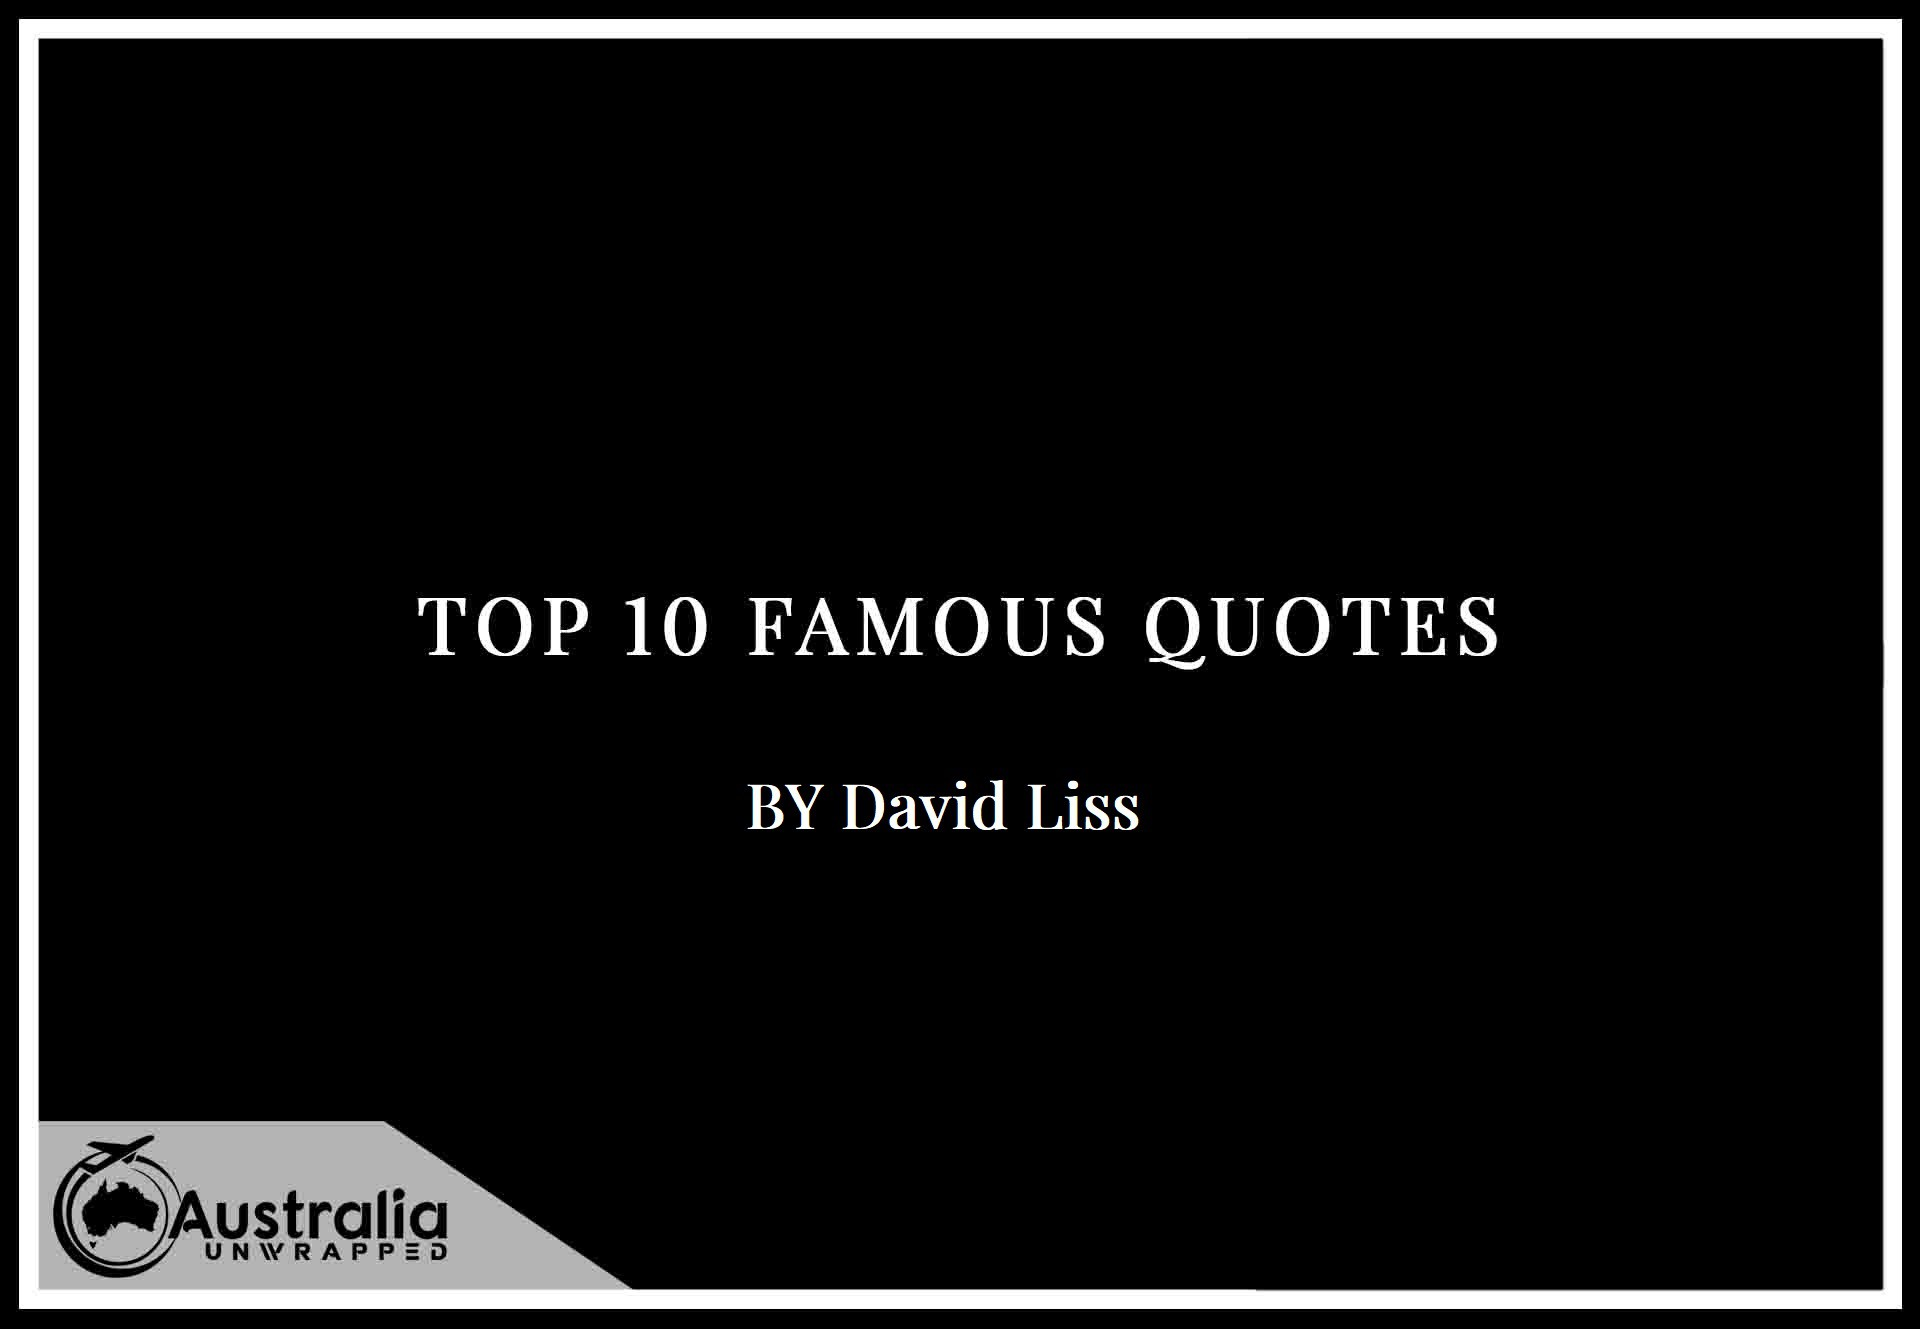 Top 10 Famous Quotes by Author David Liss